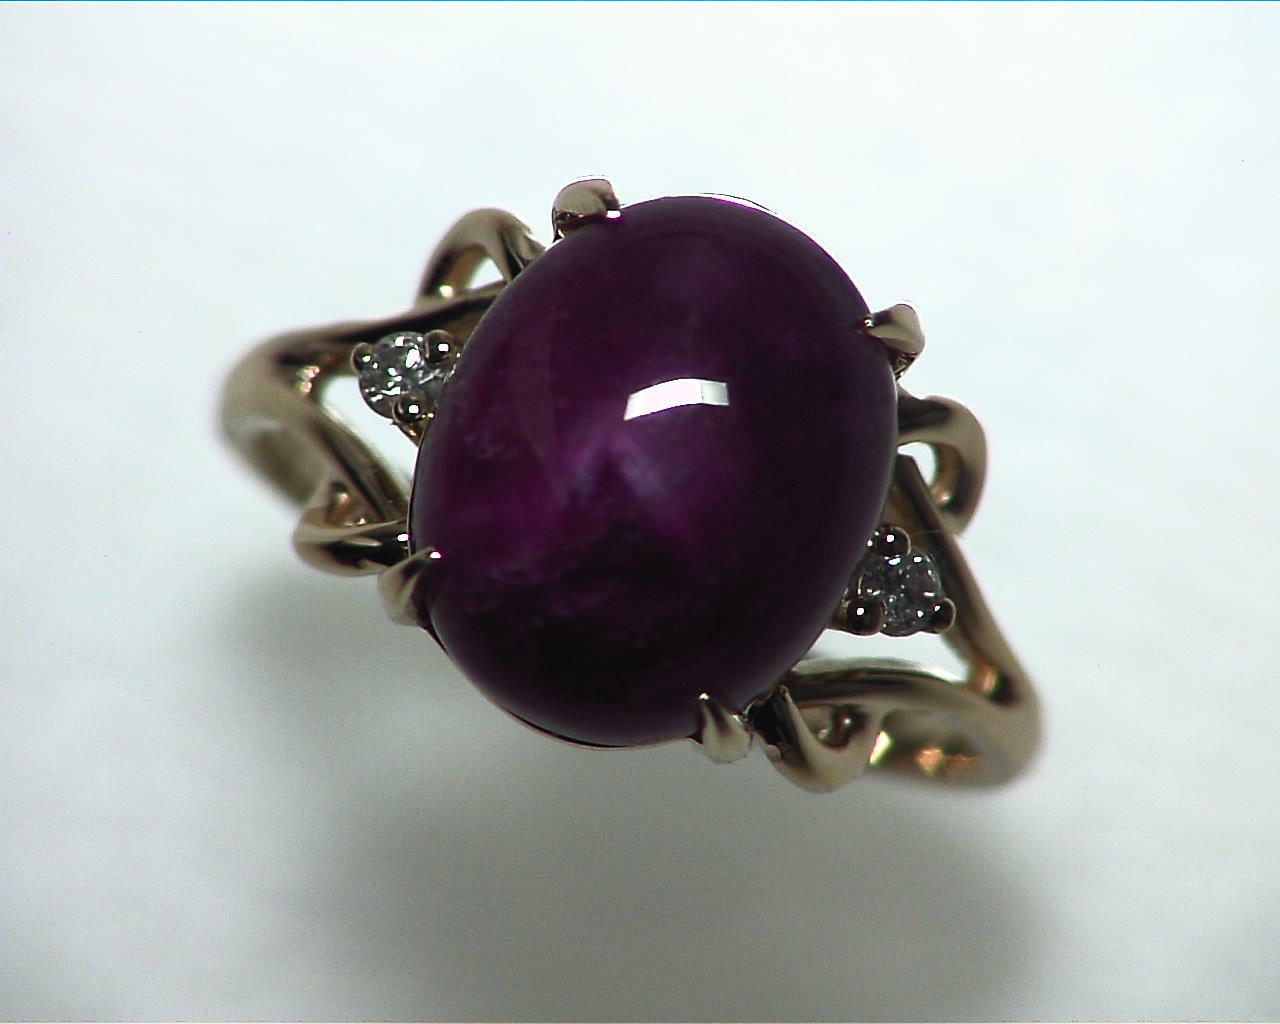 Star Ruby Natural Genuine Gemstone Ring in Gold RFK,341 5